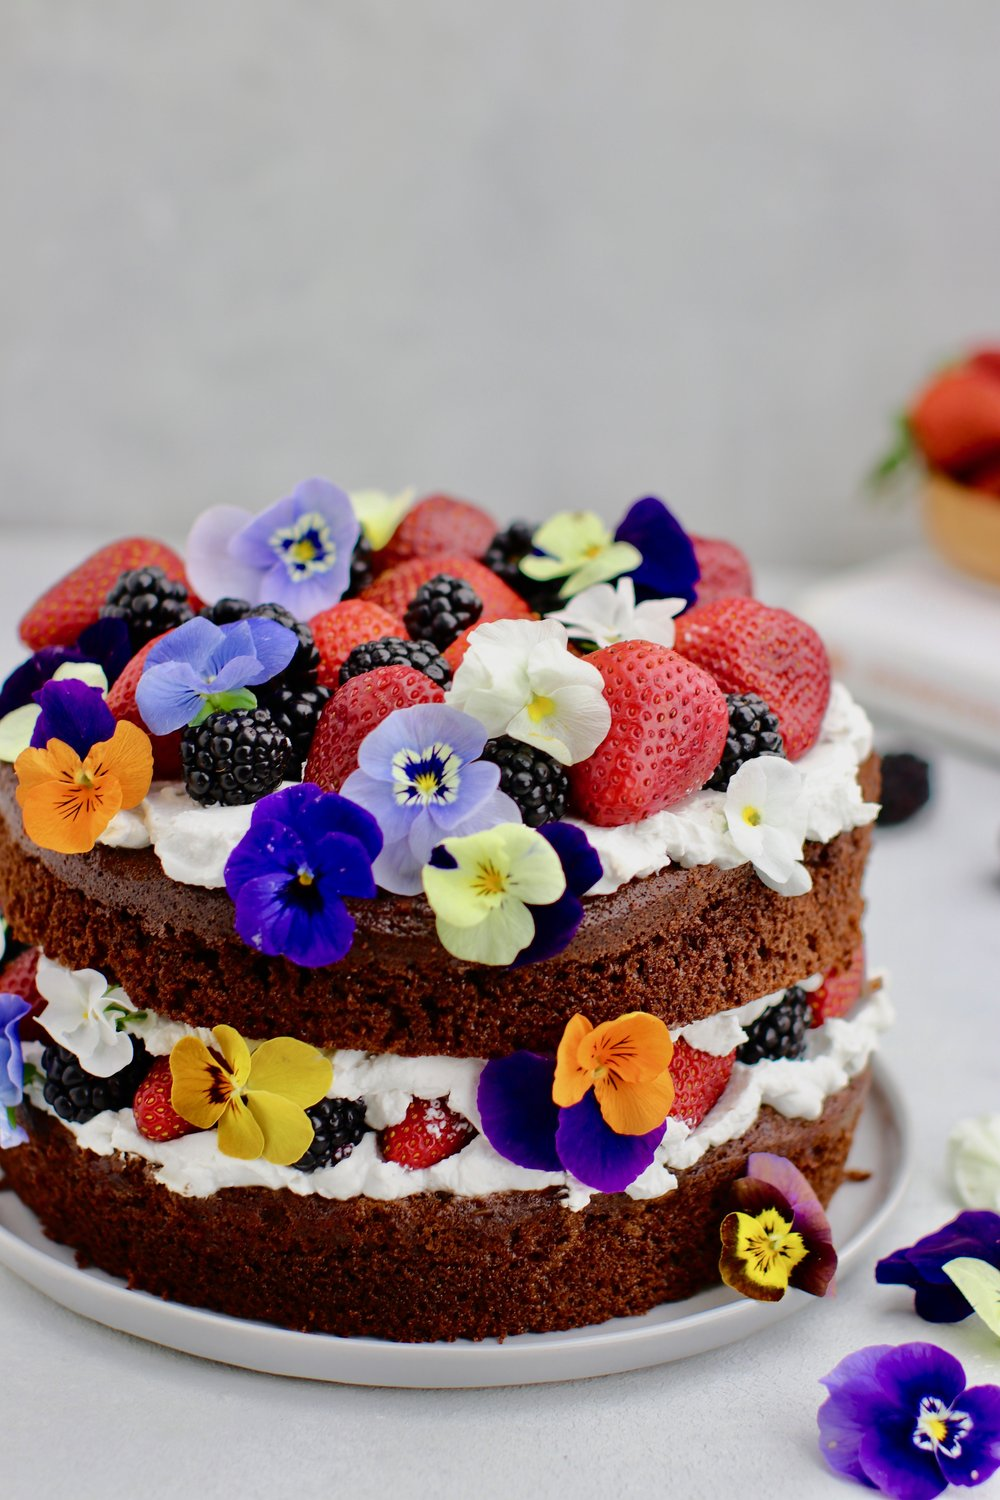 Start Spring Right - Stacked with seasonal berries!